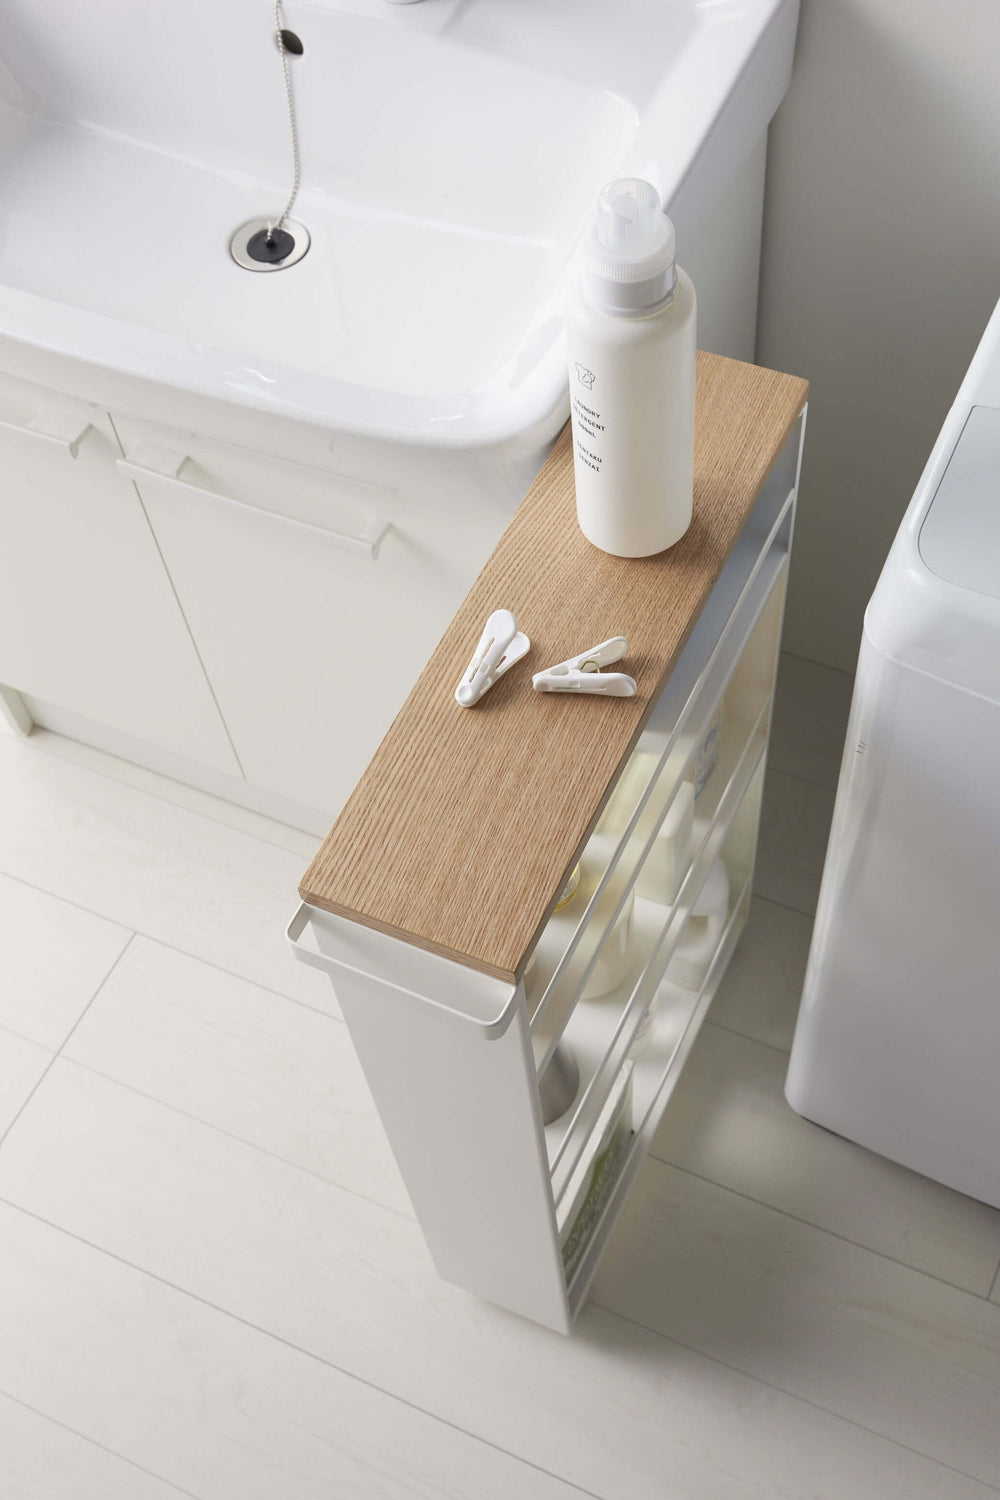 Aerial view of the Yamazaki Rolling Slim Storage Cart with bathroom spray and clips resting on the wooden top